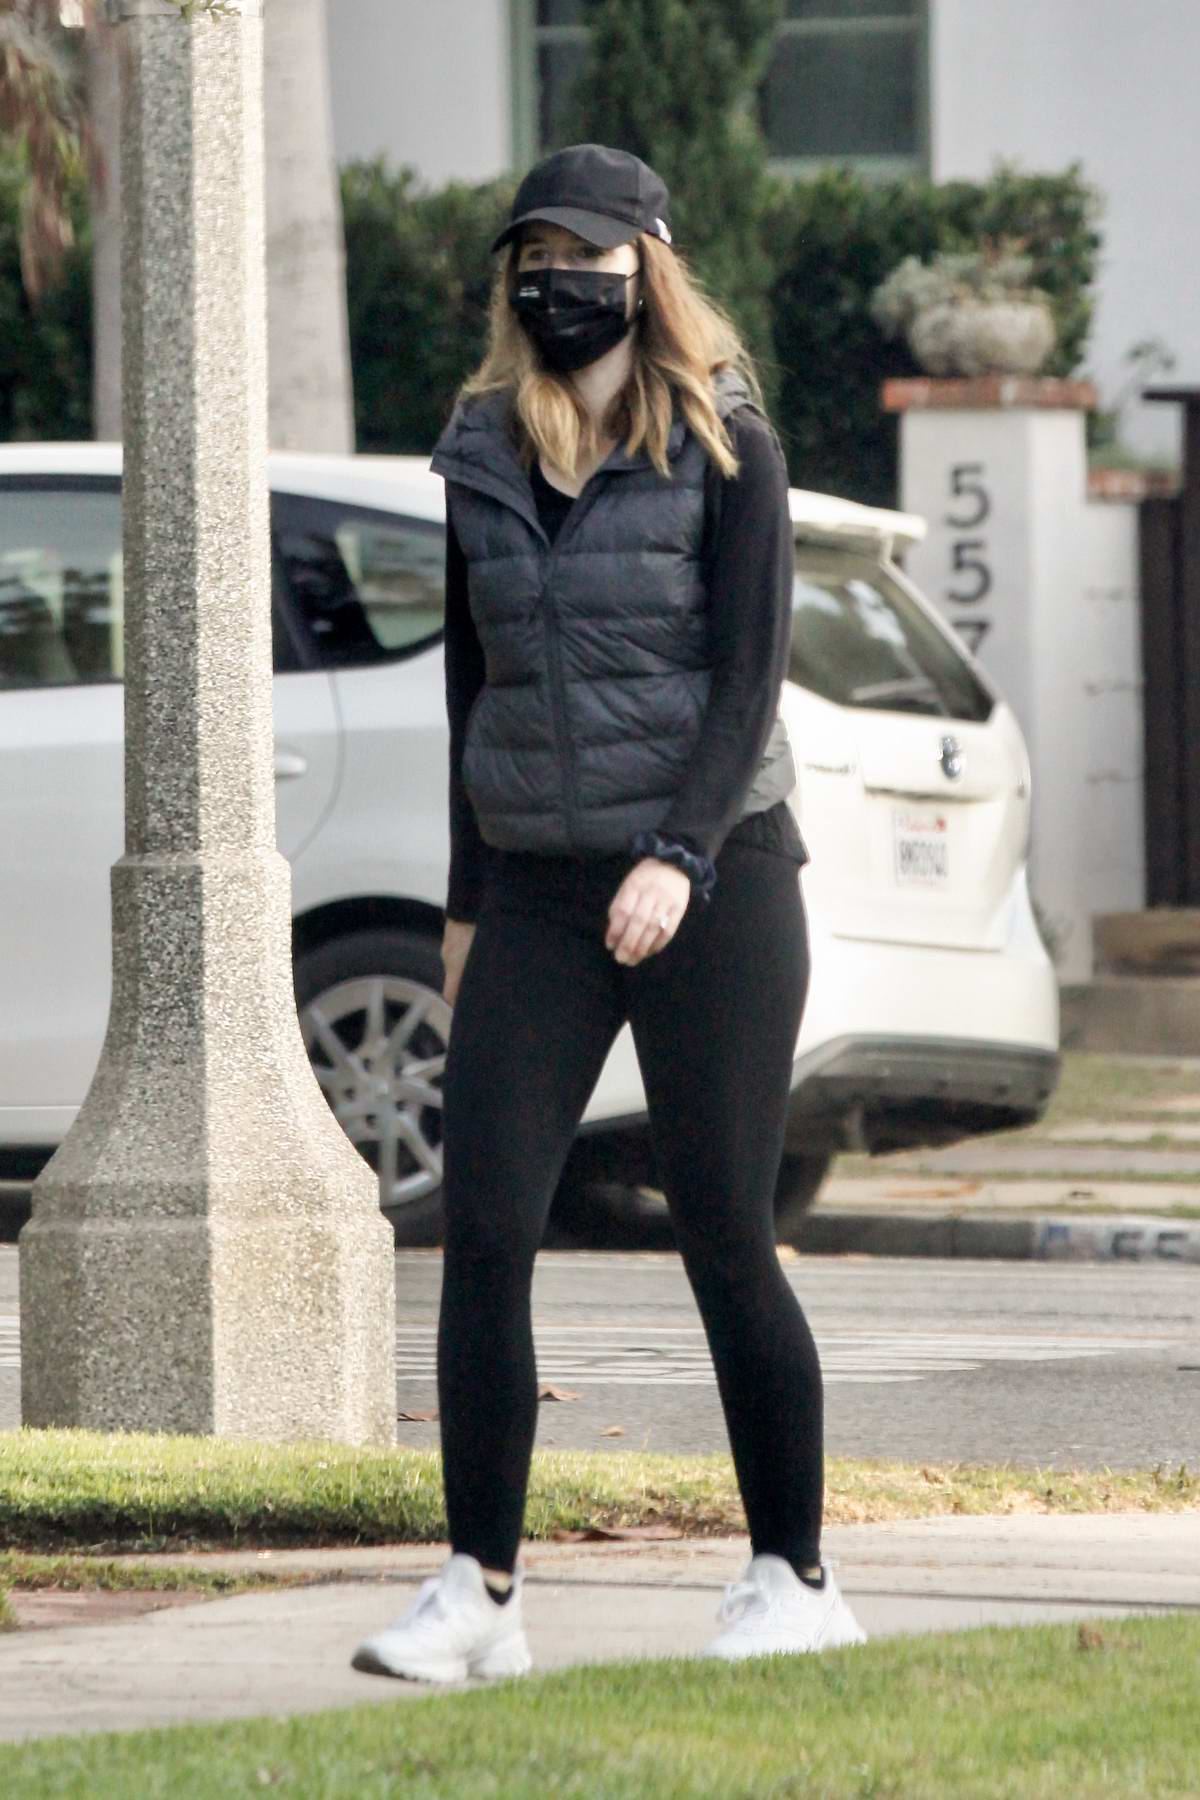 Katherine Schwarzenegger steps out in all-black for her daily walk in Santa Monica, California